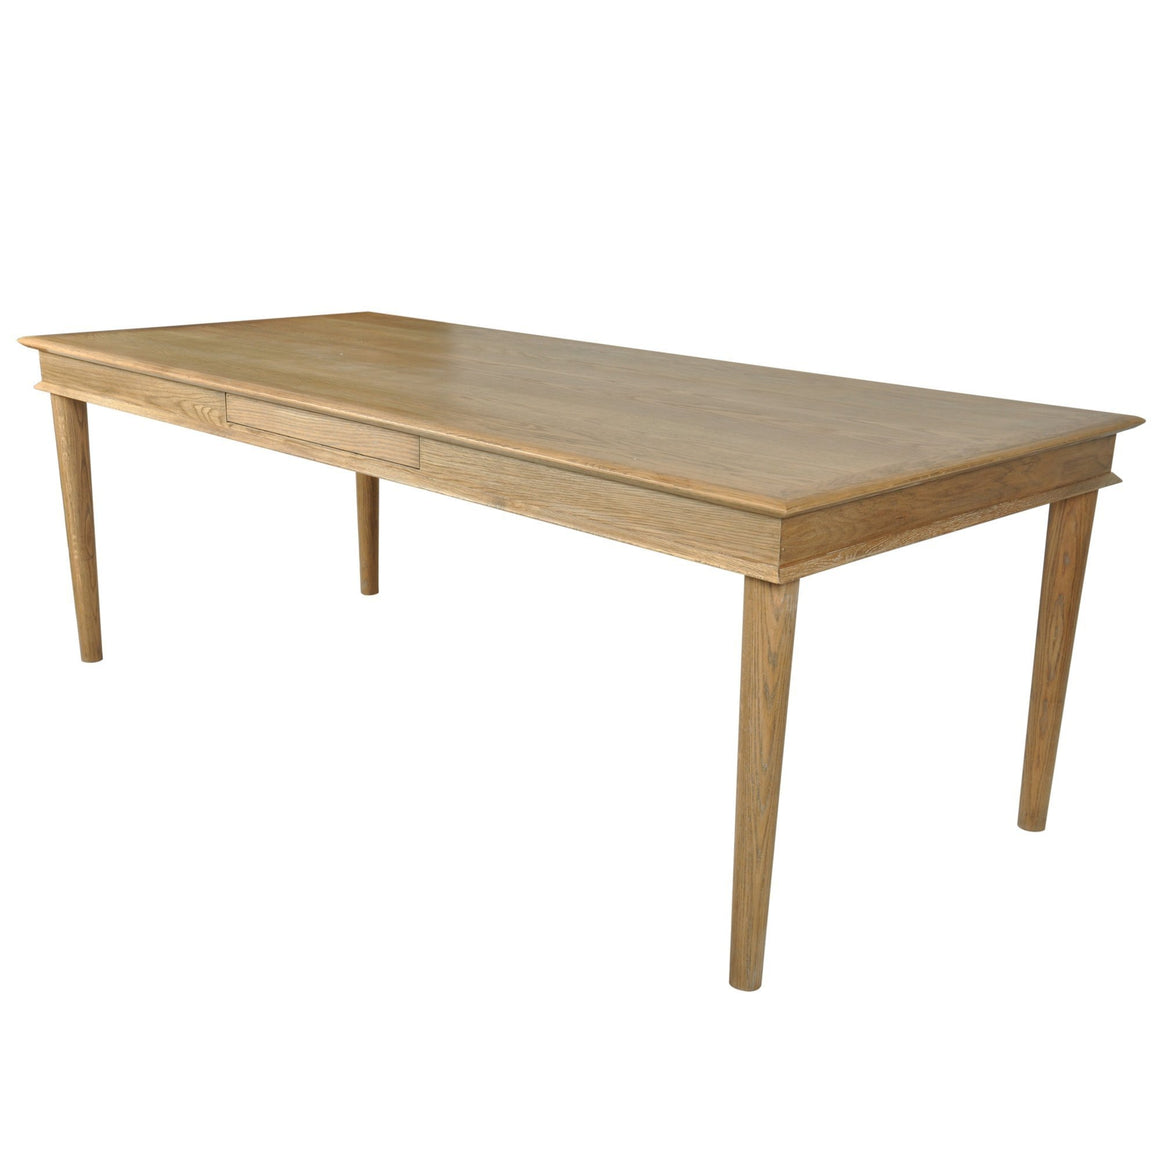 RILYNN DINING TABLE